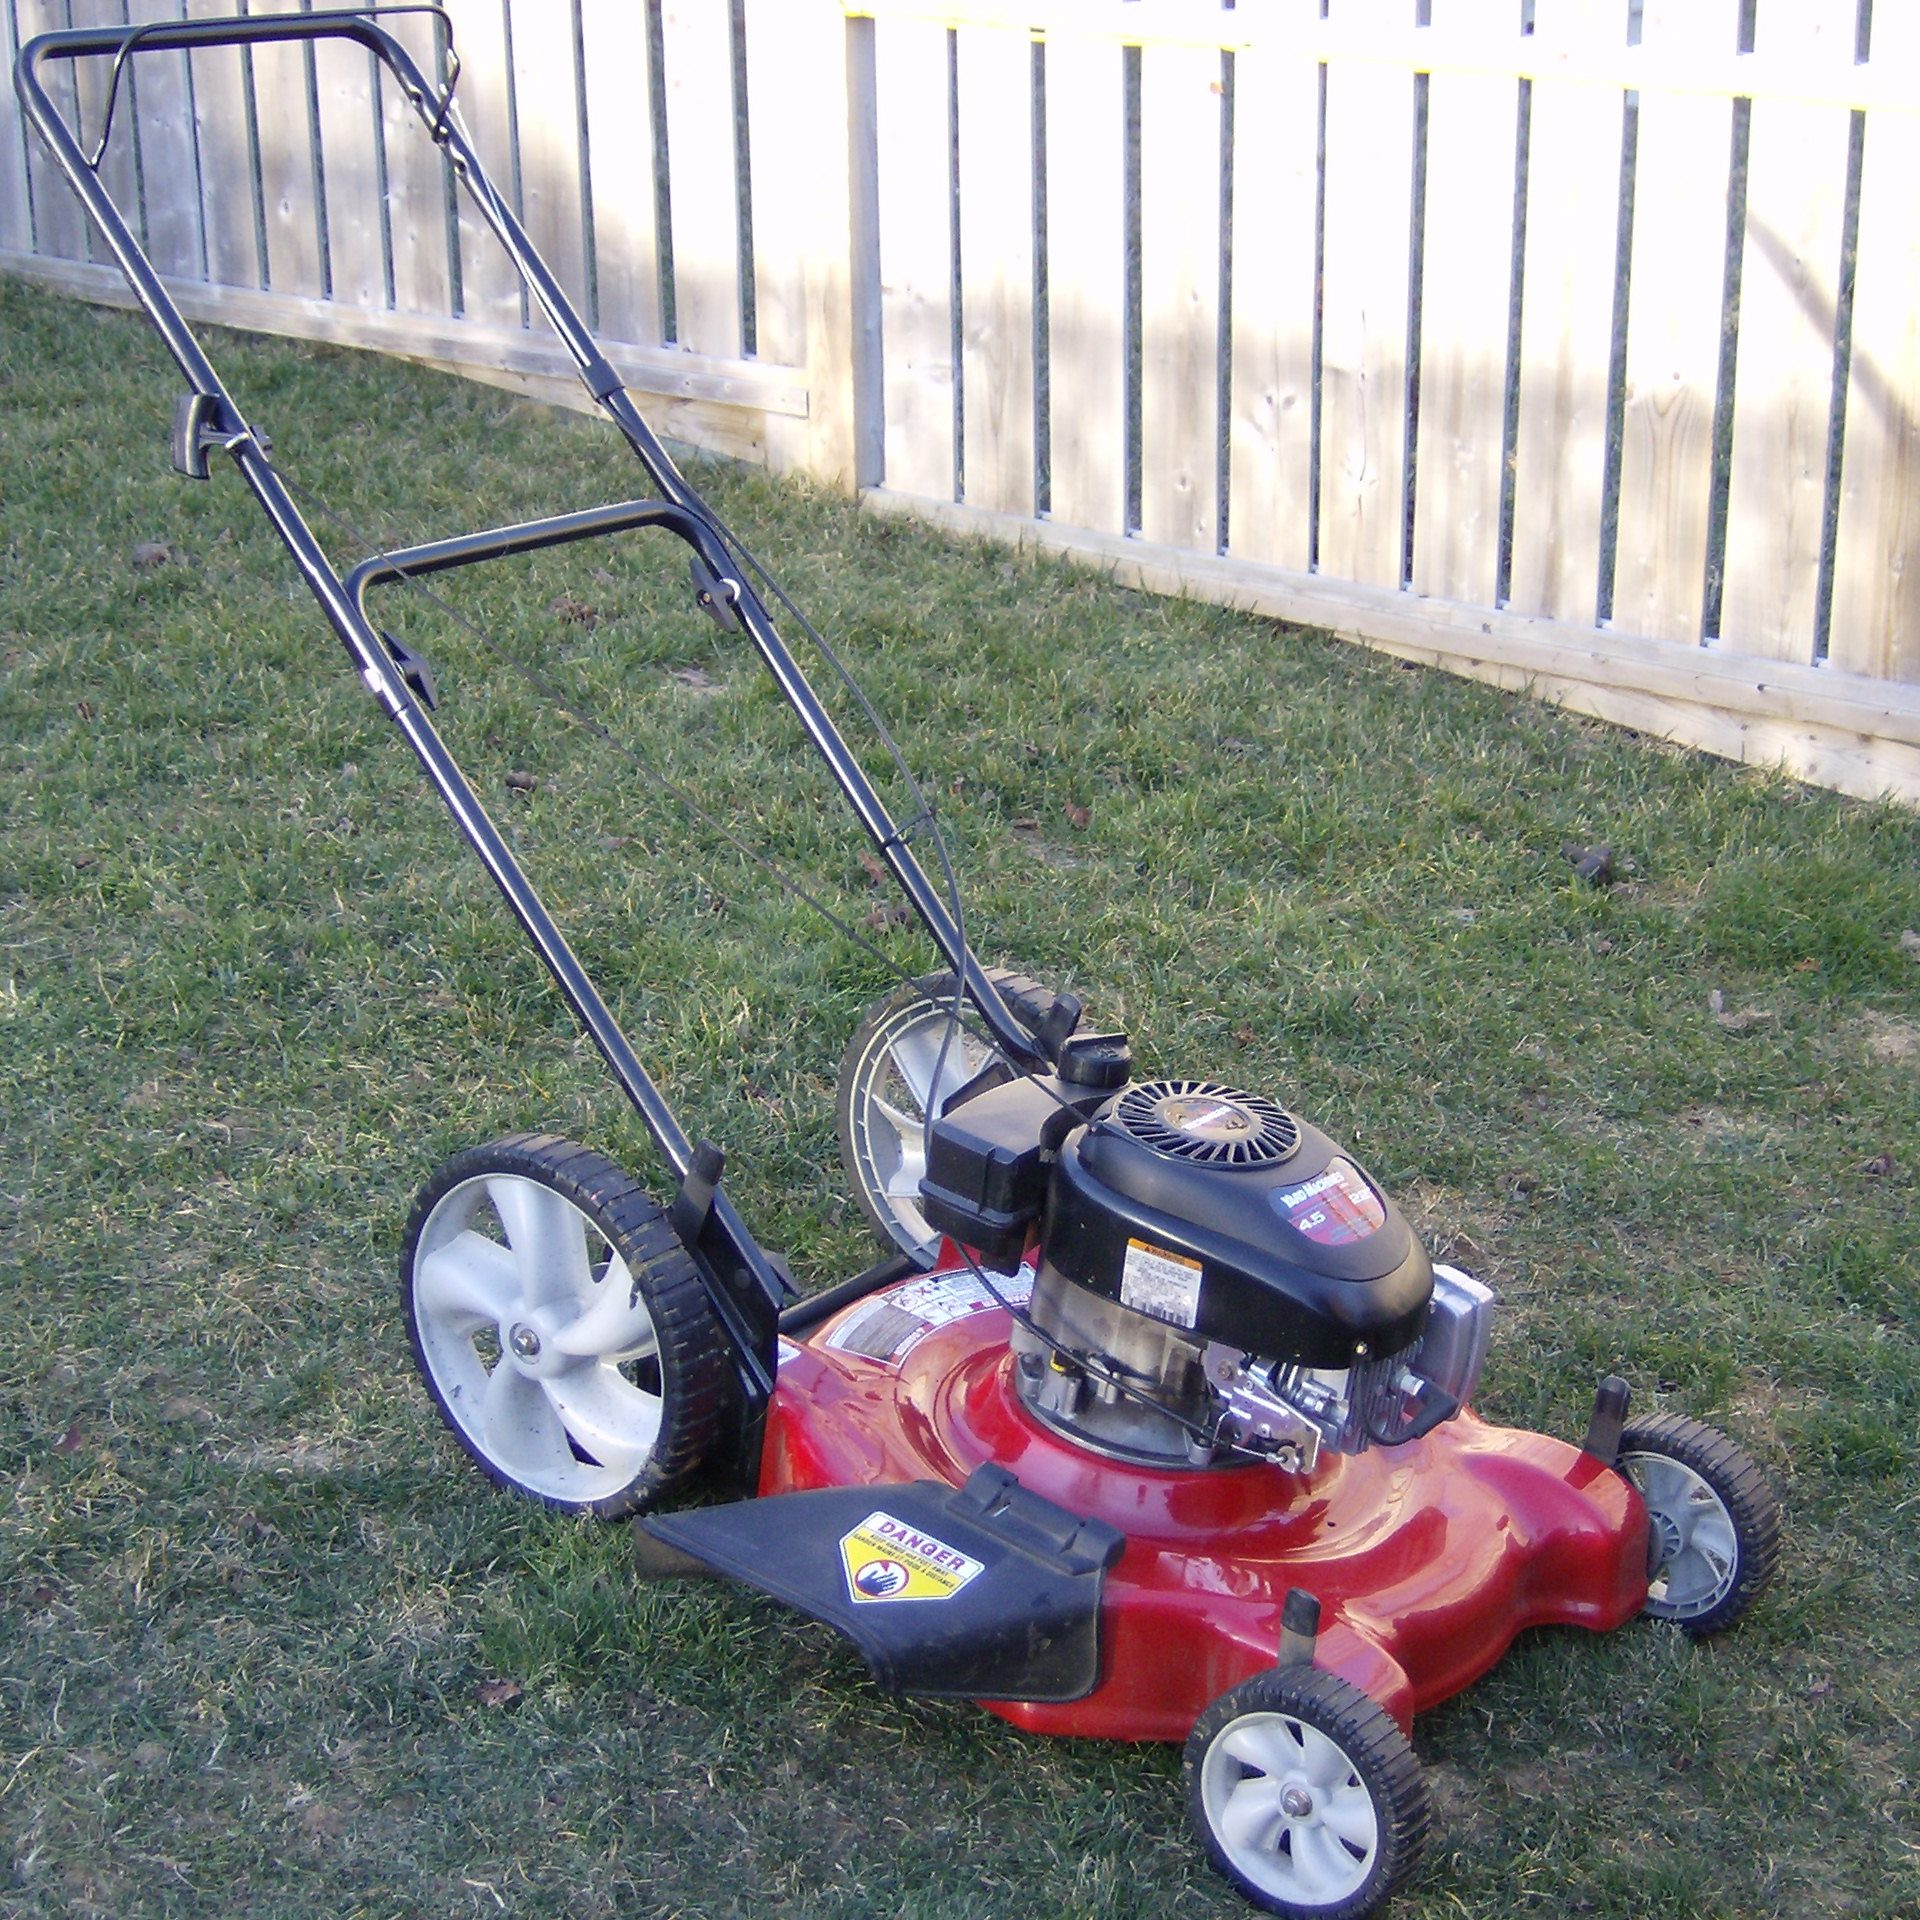 Mobile Lawn Mower Repair